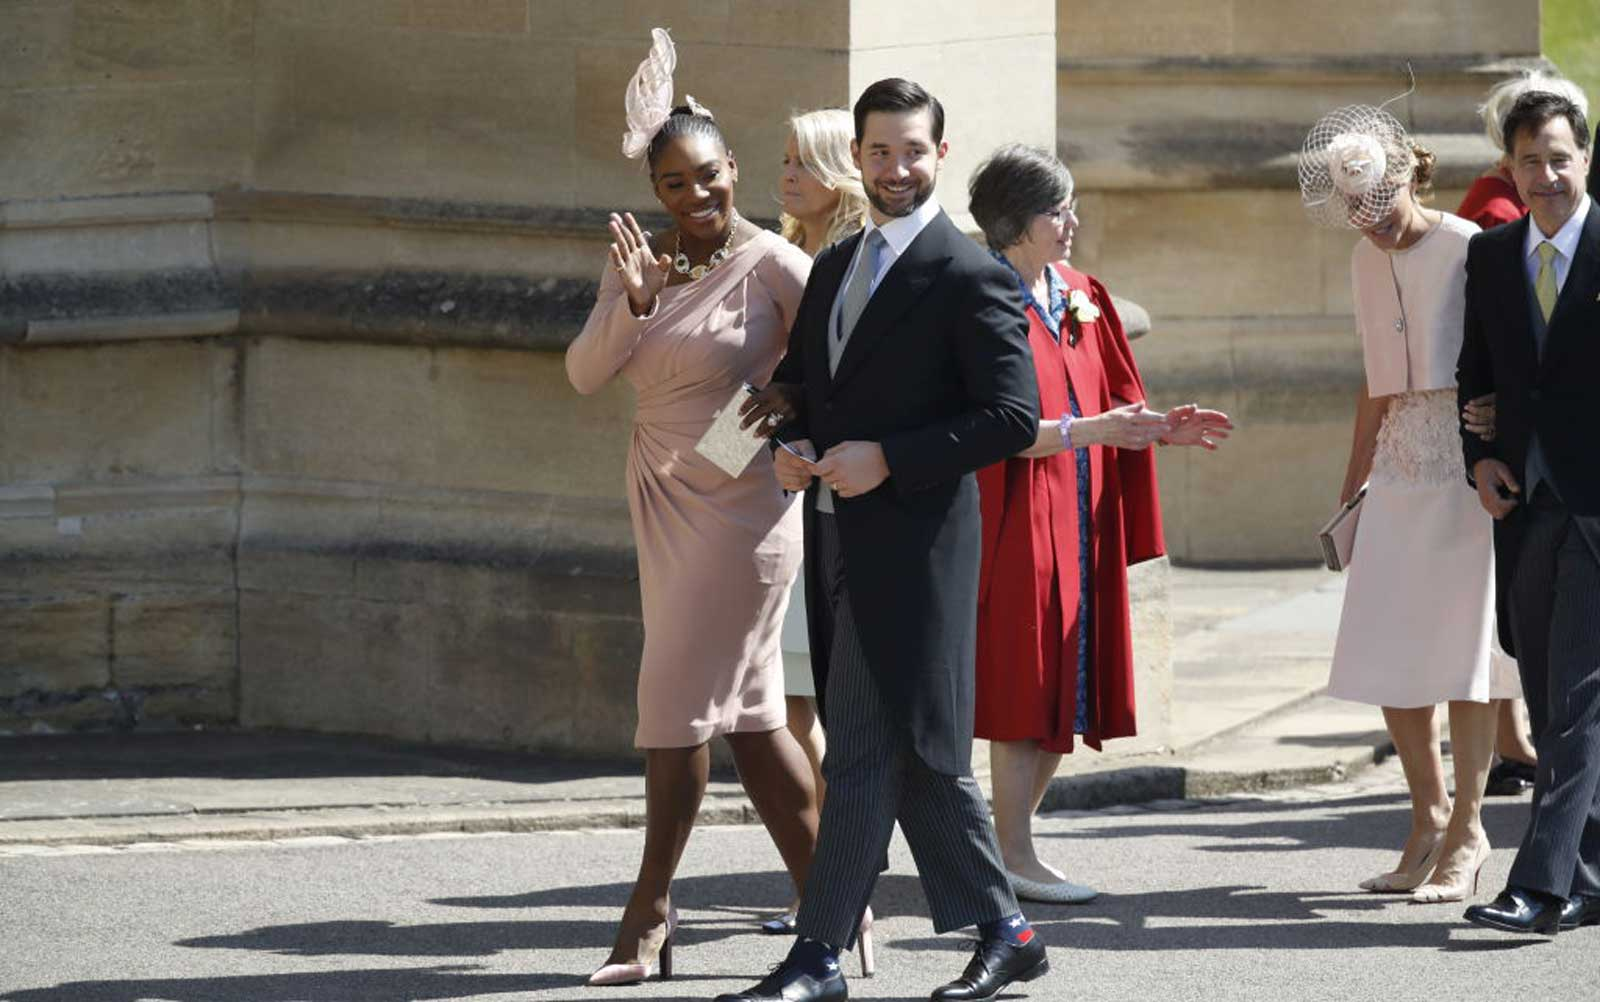 Serena Williams Shared Every Step of Her Royal Wedding Prep and the Videos Are Amazing